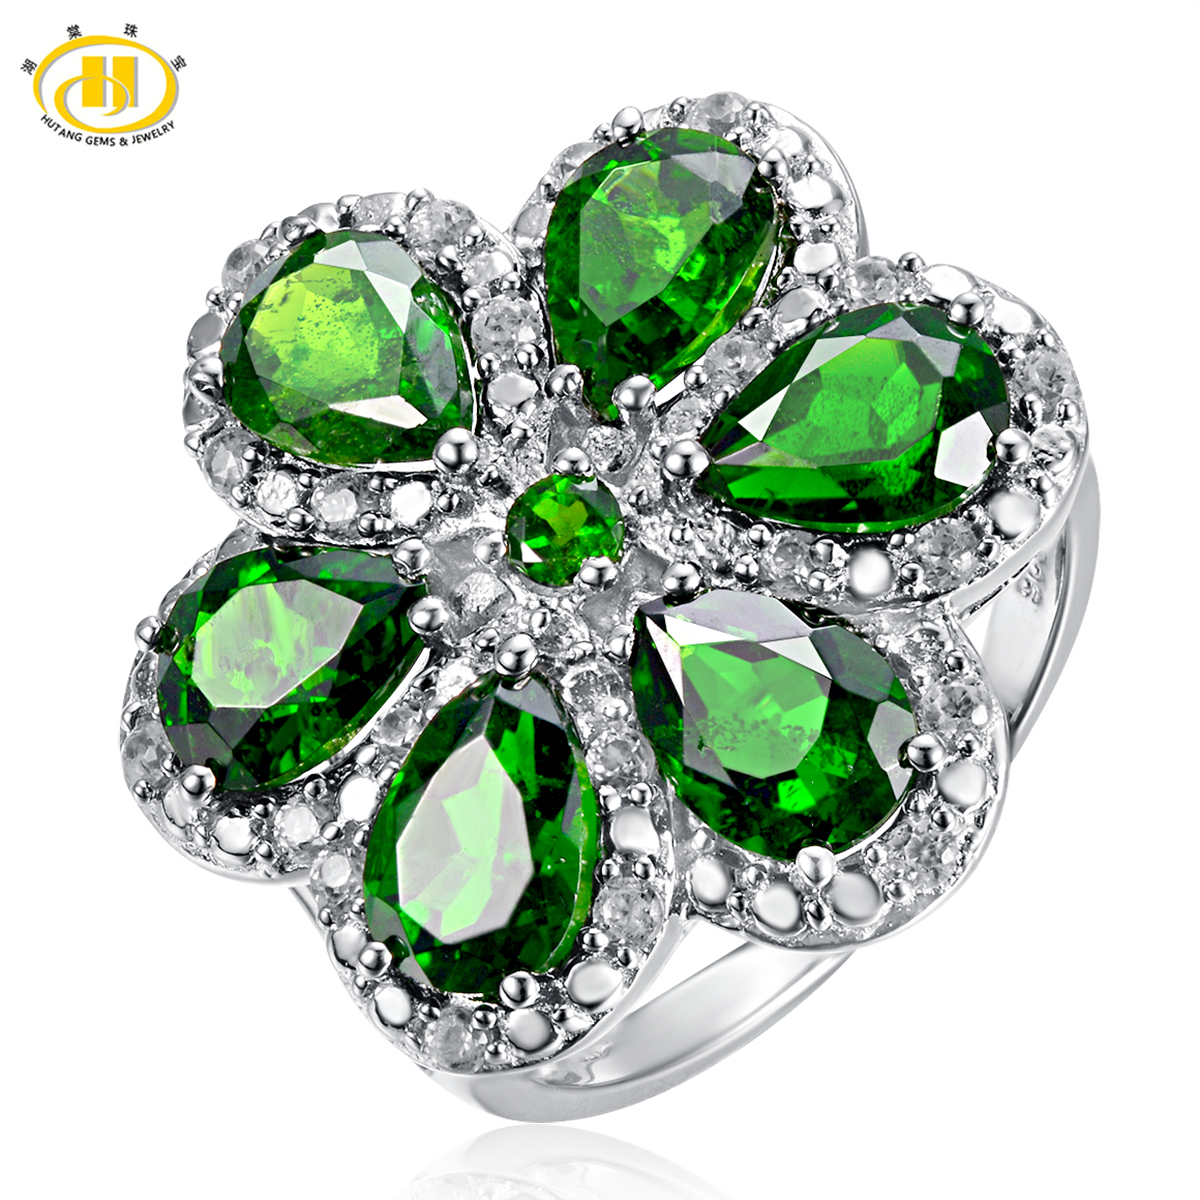 Hutang Natural Chrome Diopside Flower Ring Solid S925 Sterling Silver Luxury Fine Jewelry Women's Birthday Gift цена и фото